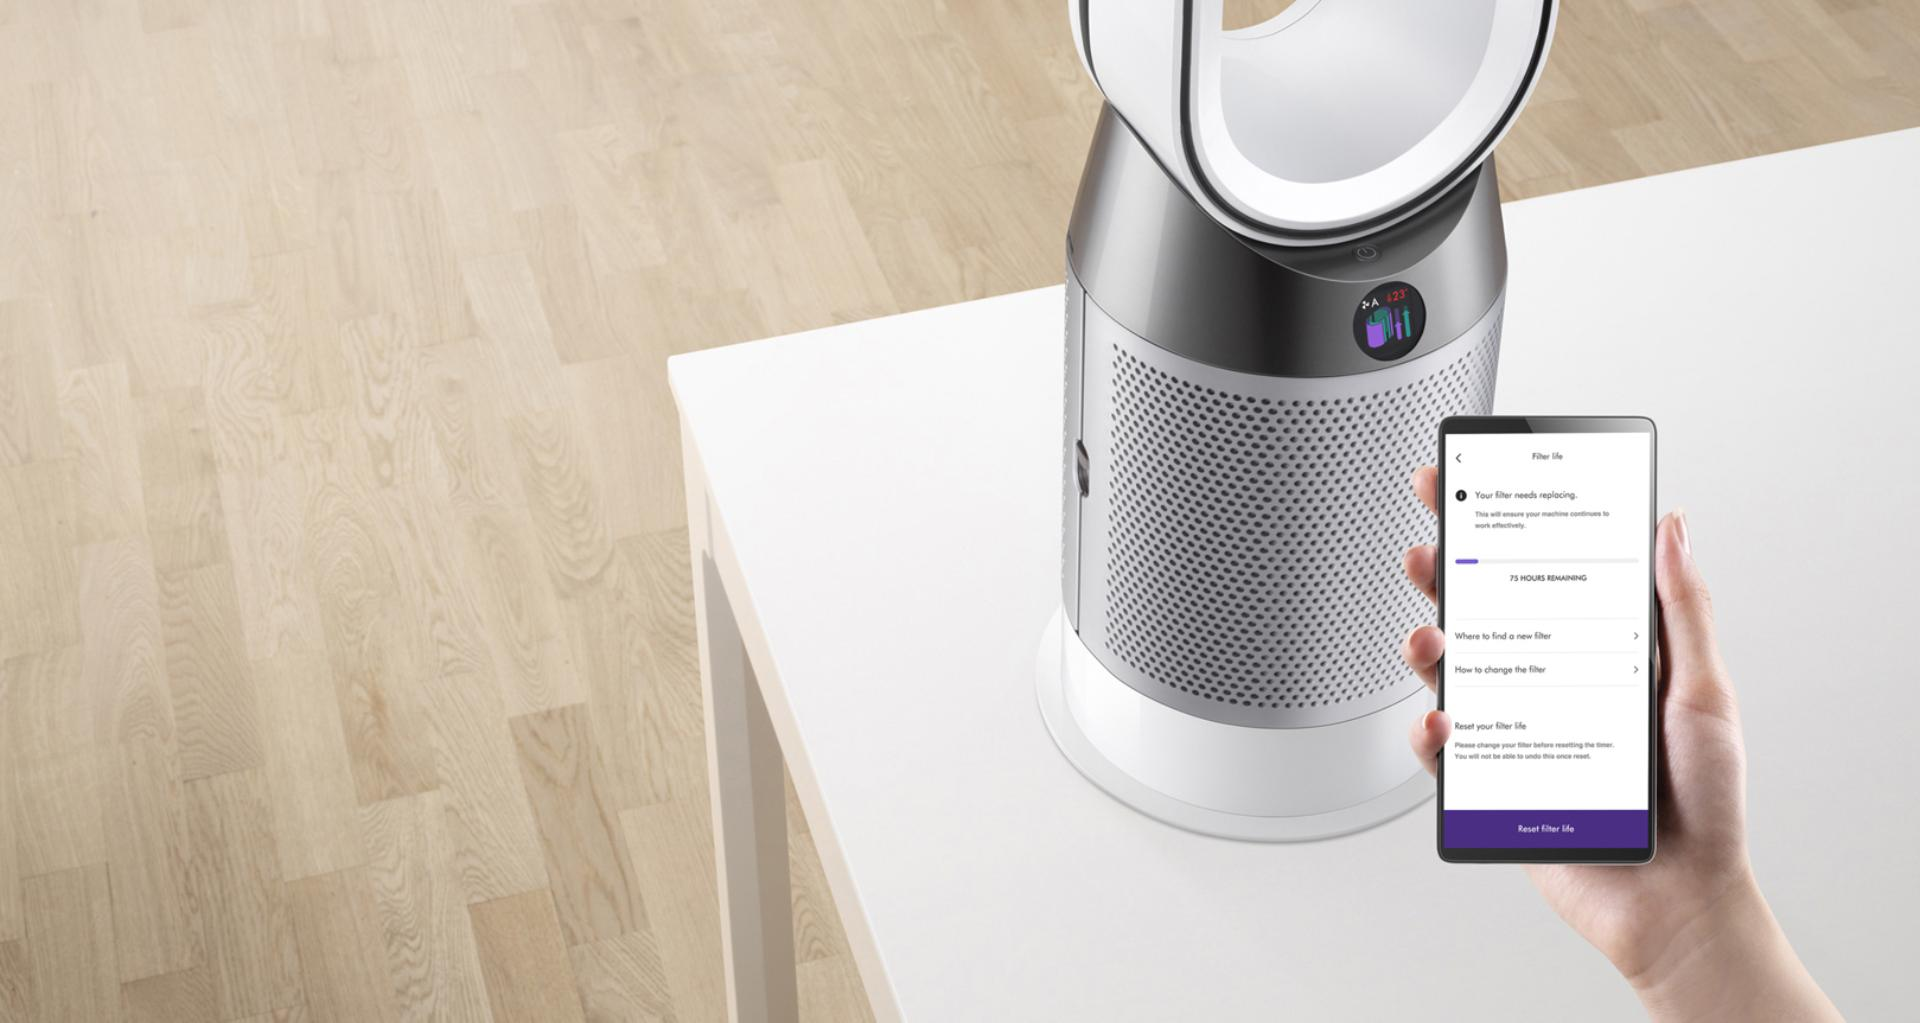 Dyson Link app controlling the Dyson Pure Hot+Cool purifier